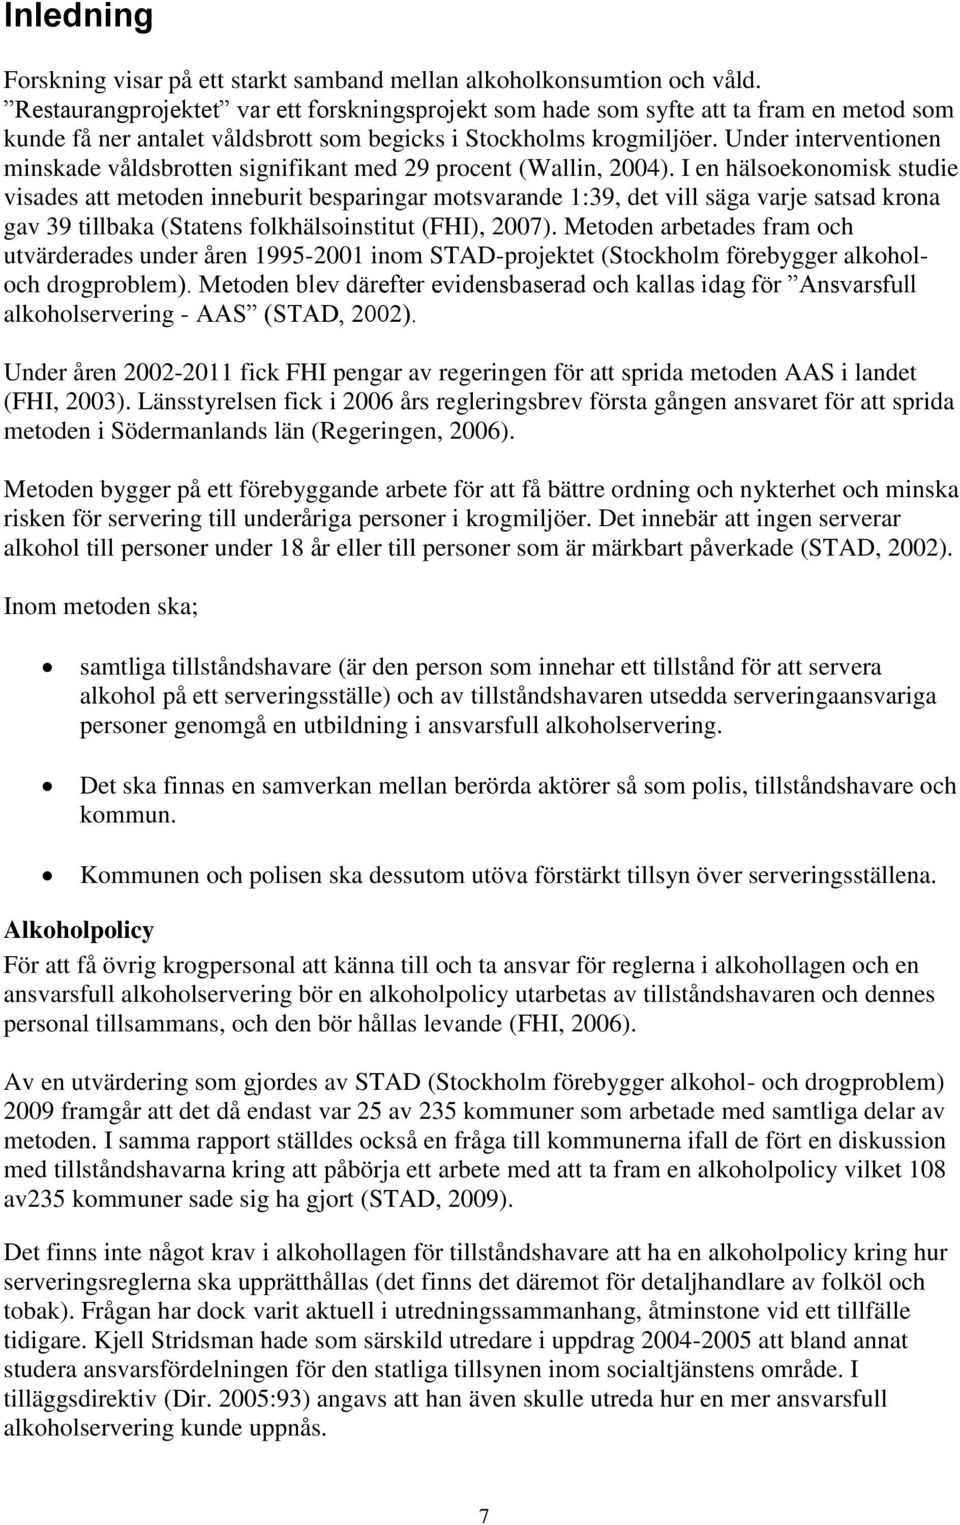 Under interventionen minskade våldsbrotten signifikant med 29 procent (Wallin, 2004).